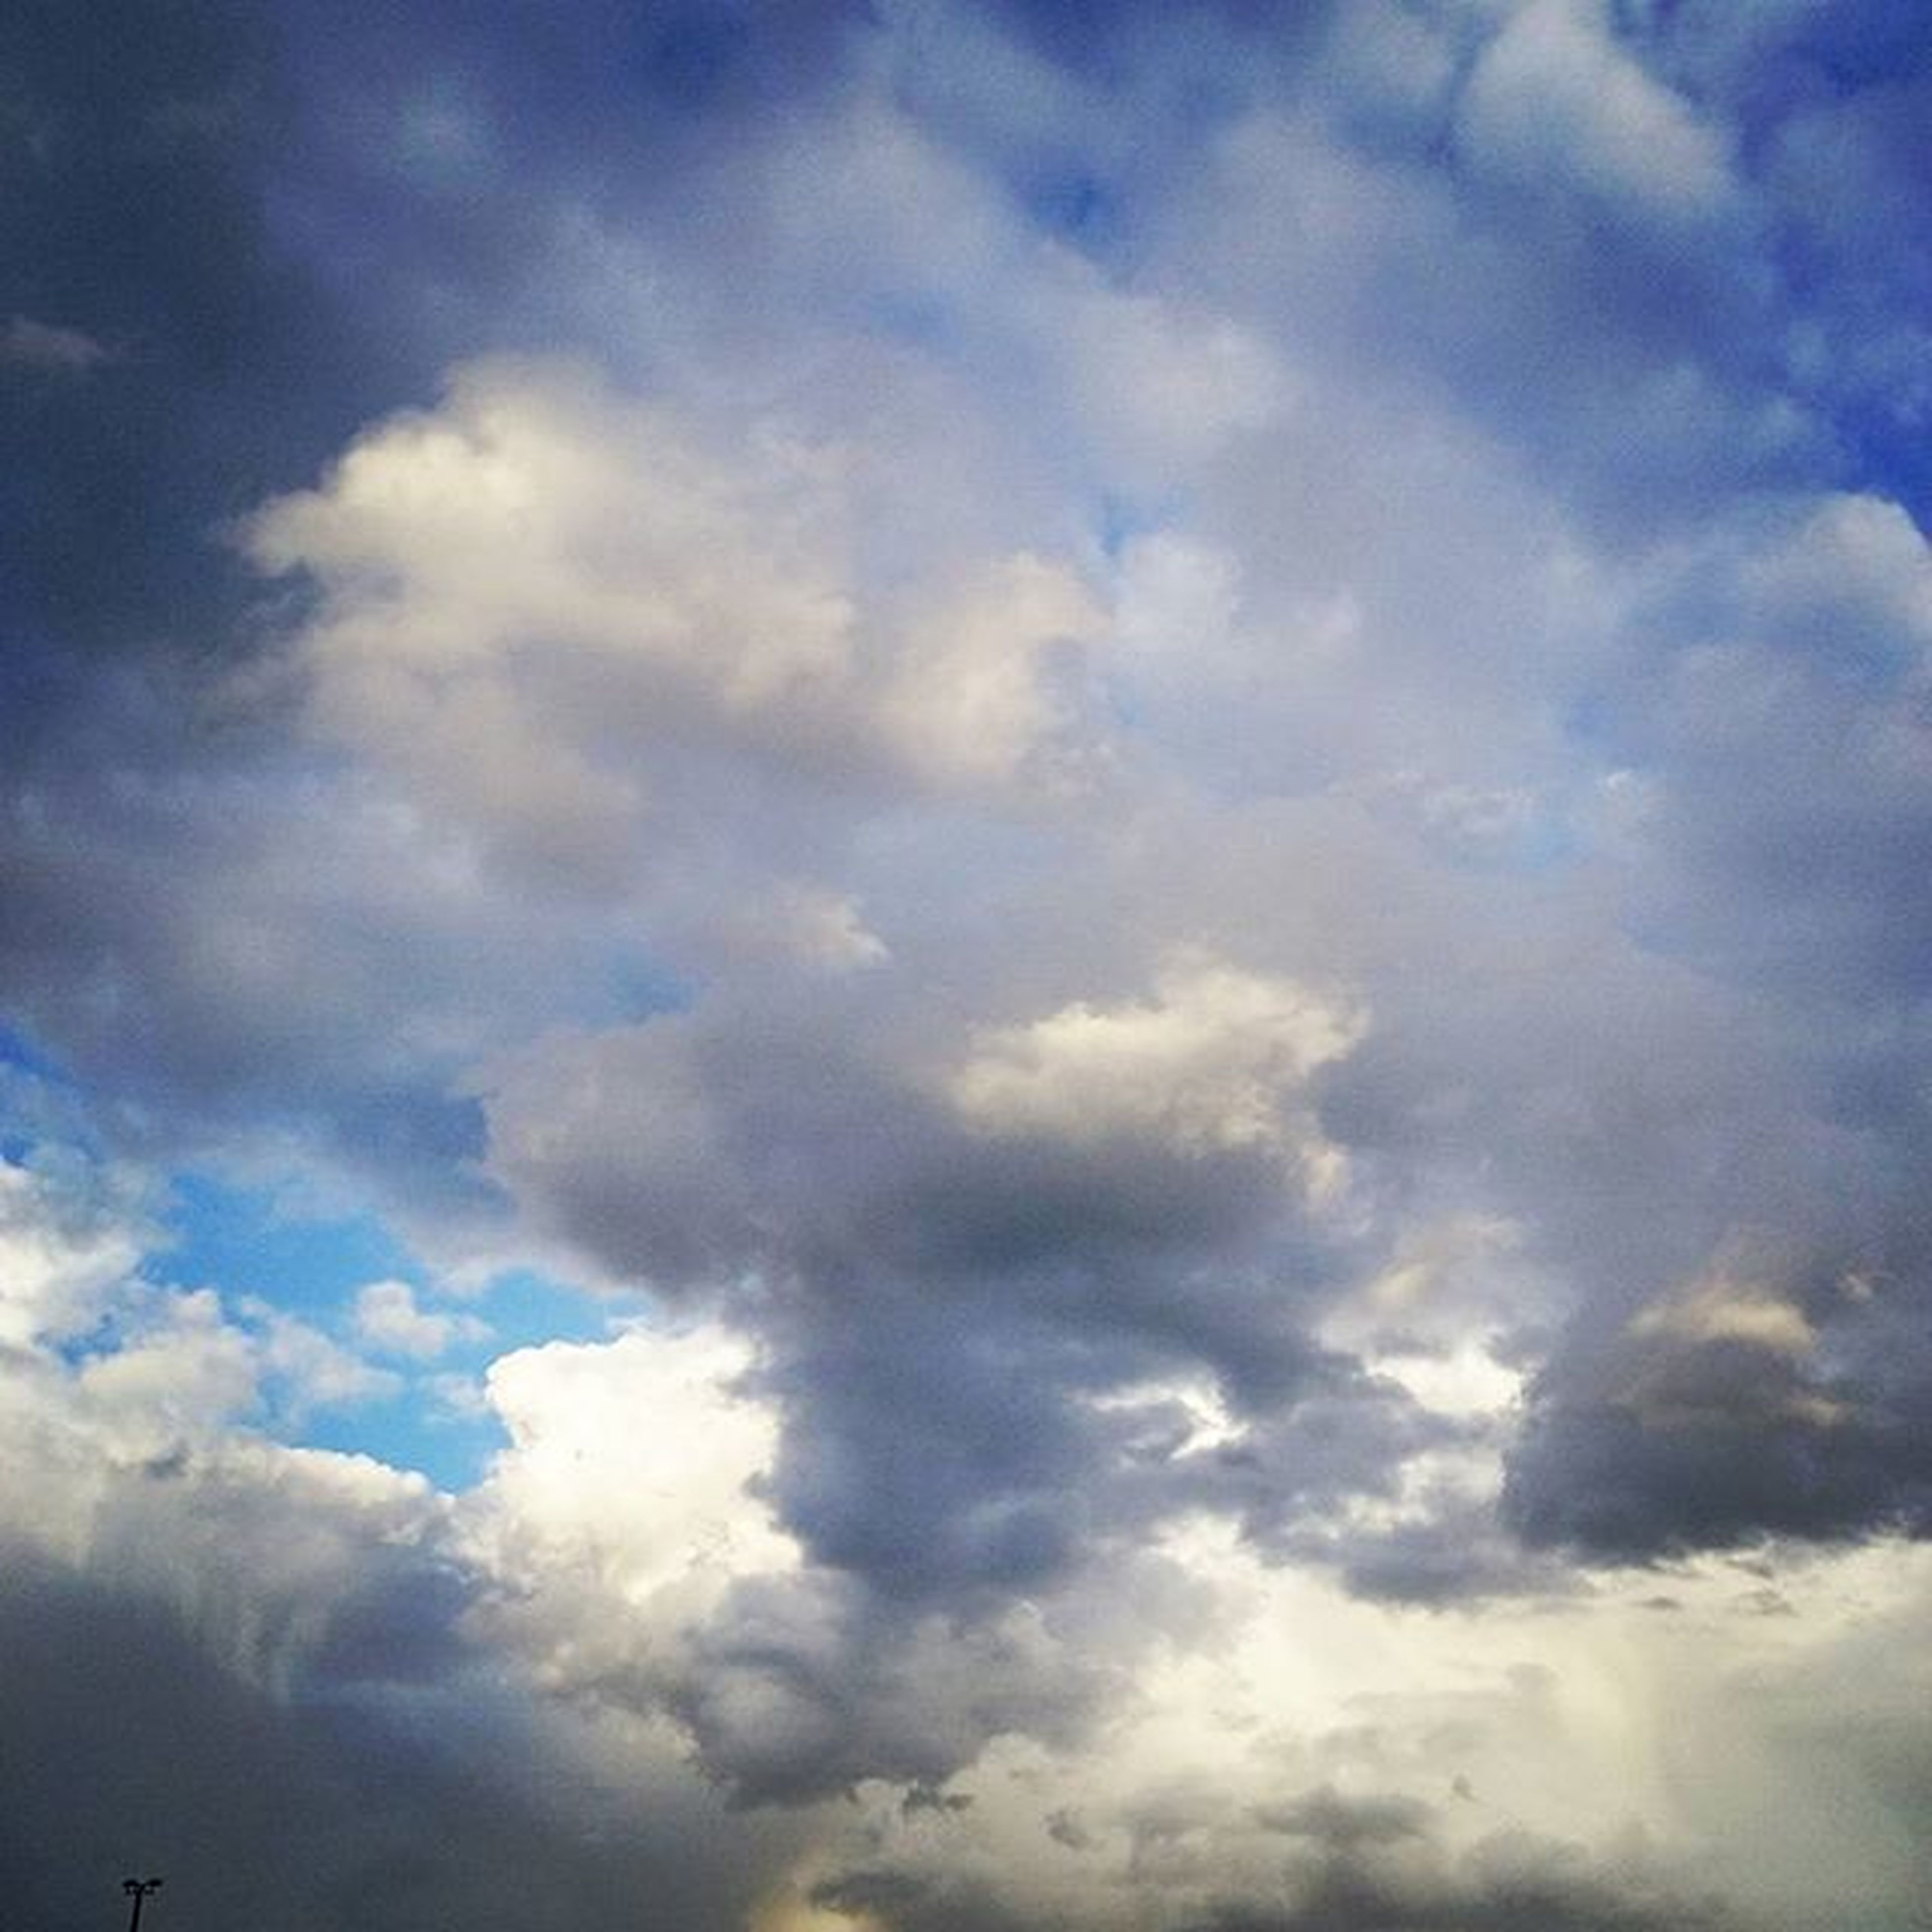 sky, cloud - sky, low angle view, sky only, beauty in nature, cloudy, tranquility, cloudscape, scenics, nature, tranquil scene, backgrounds, cloud, blue, full frame, idyllic, weather, majestic, outdoors, no people